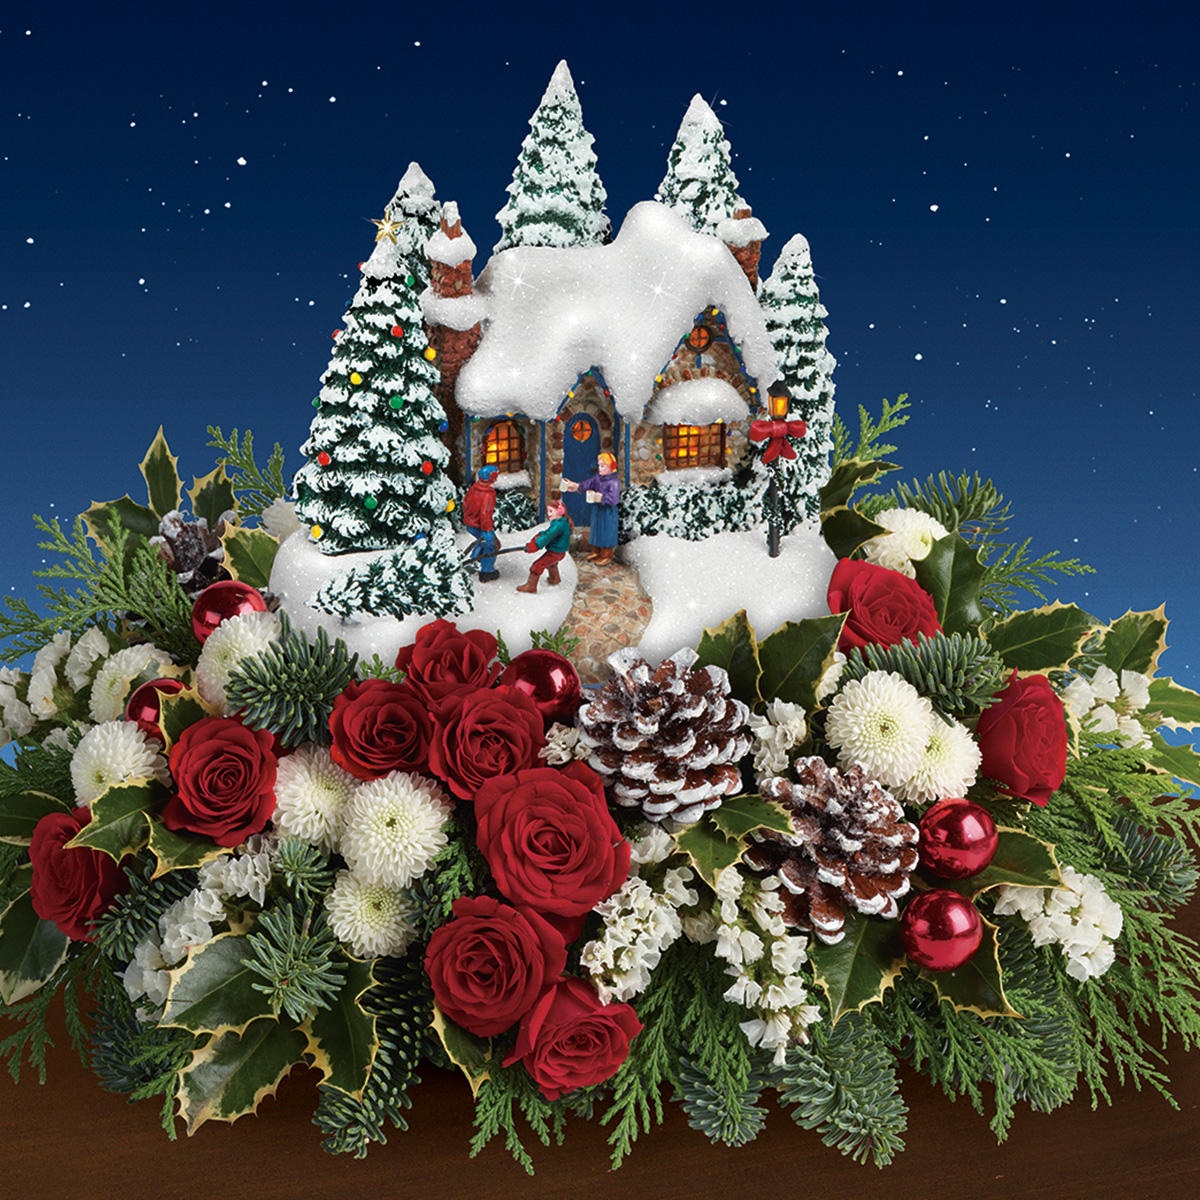 Teleflora Christmas Arrangements 2020 Thomas Kinkade's Country Christmas Homecoming Bouquet by Teleflora